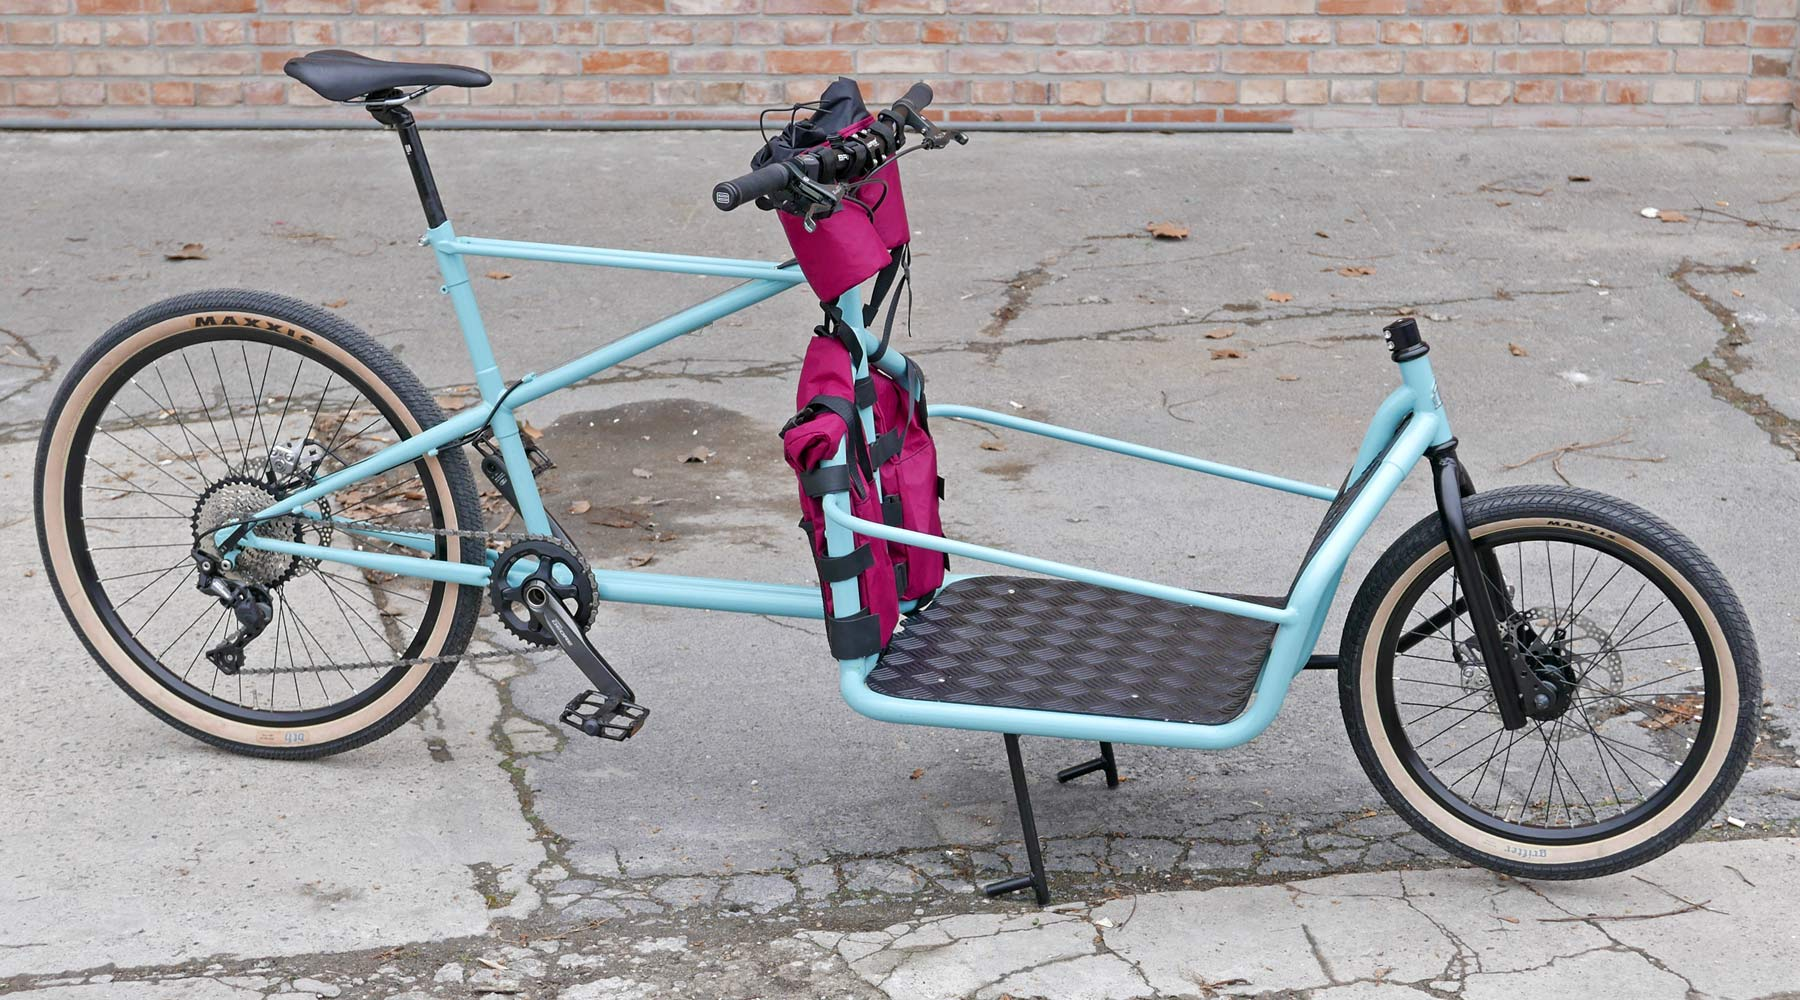 REcycle Bronte, your old bike reborn as a modern made-in-Italy cargo bike